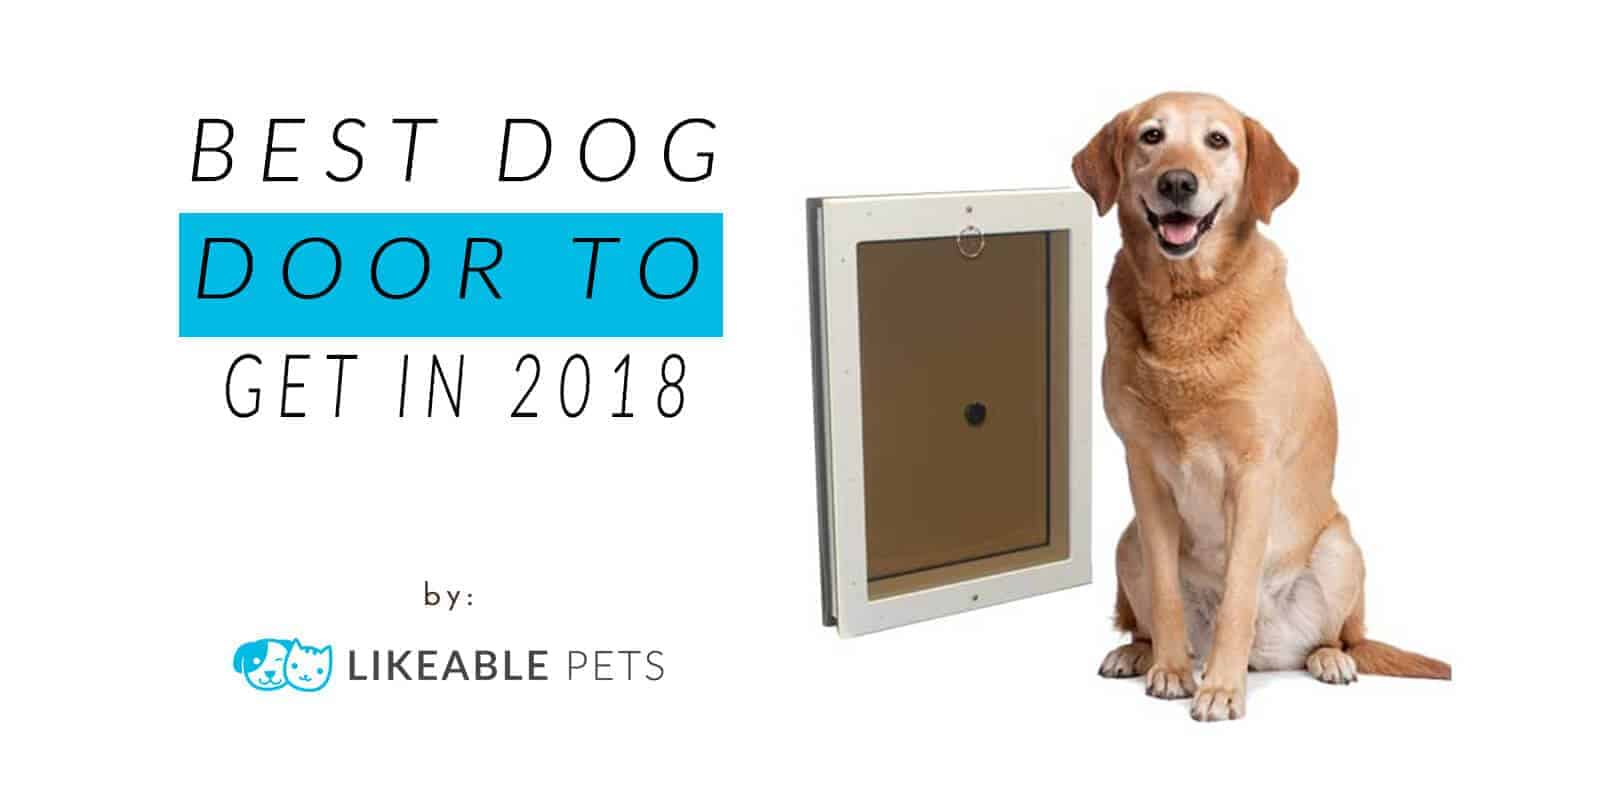 Best Dog Door to Get in 2018